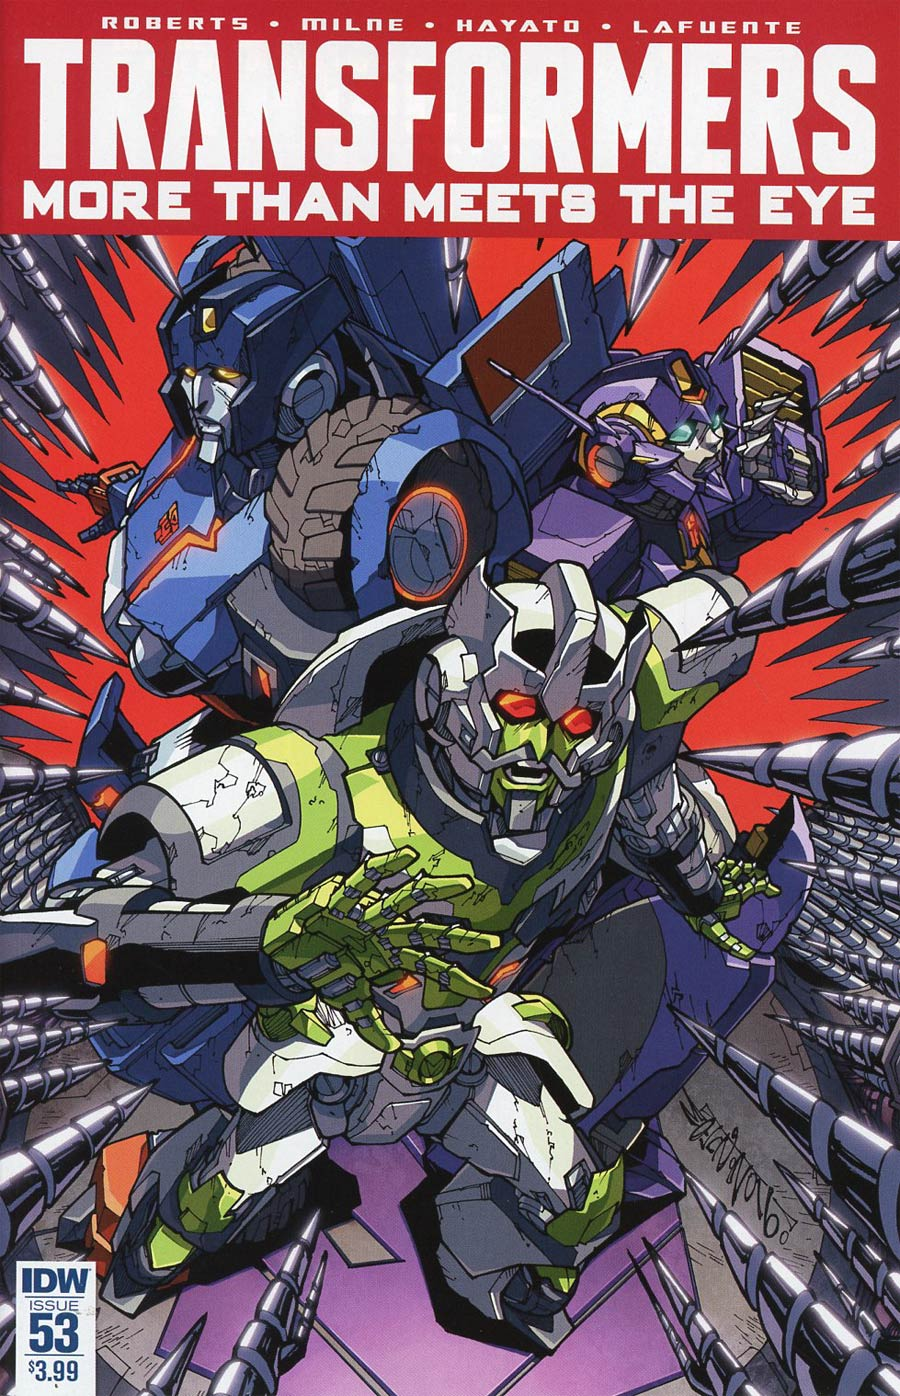 Transformers More Than Meets The Eye #53 Cover A Regular Alex Milne Cover